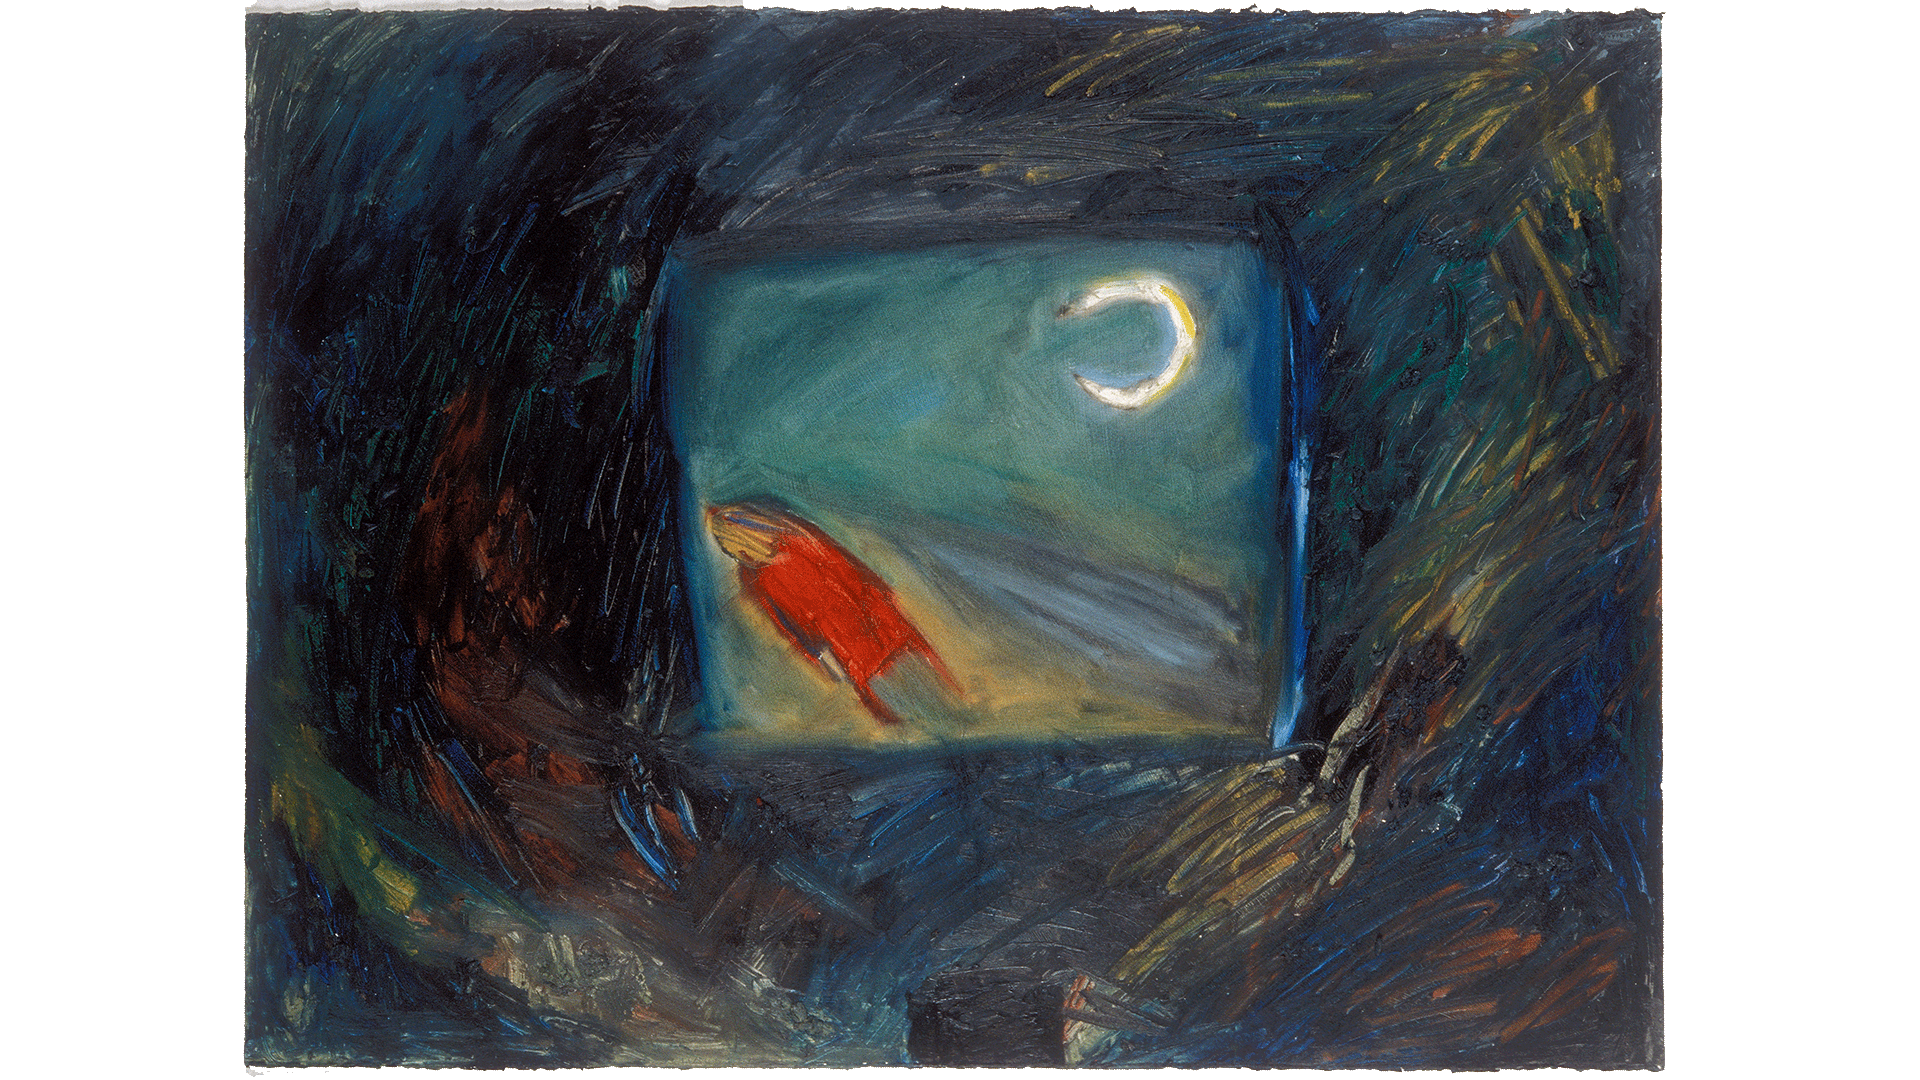 virginiahalstead.com/Paintings/The-moon-has-a-handle-but-I-can't-grab-it.png